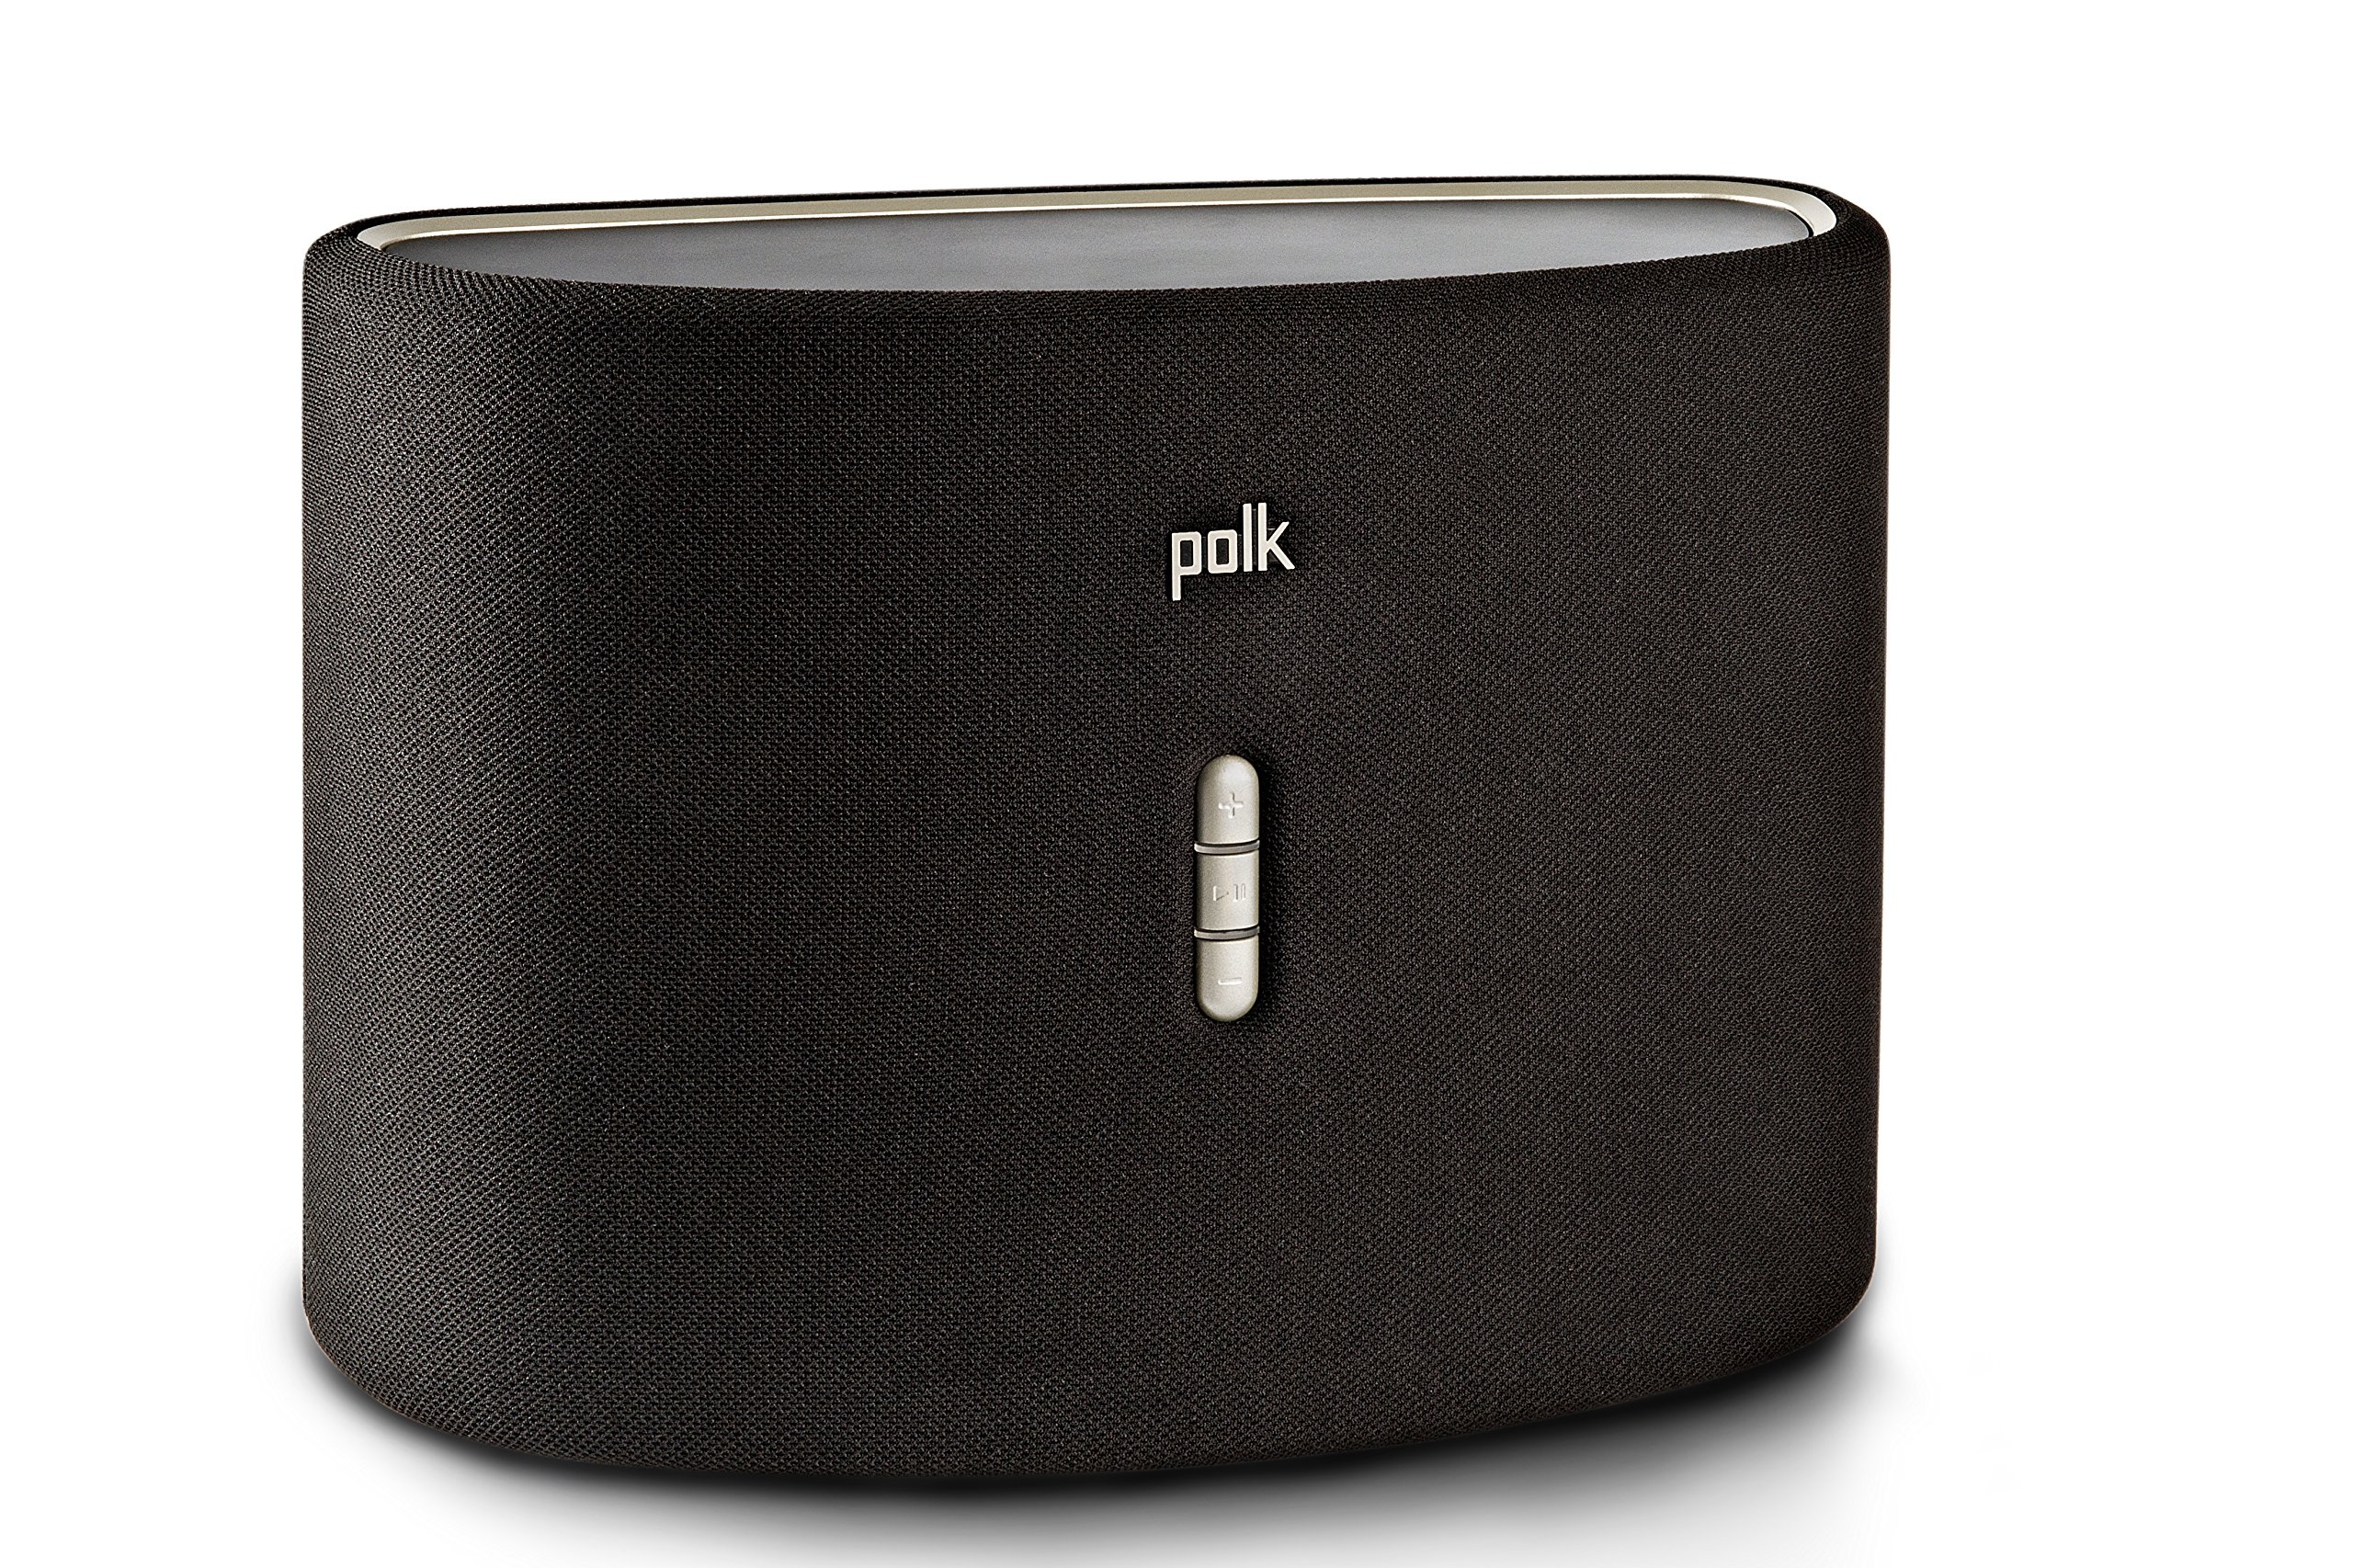 Polk Audio Omni S6 Wireless Wi-Fi Music Streaming Speaker with Play-Fi (Black) by Polk Audio